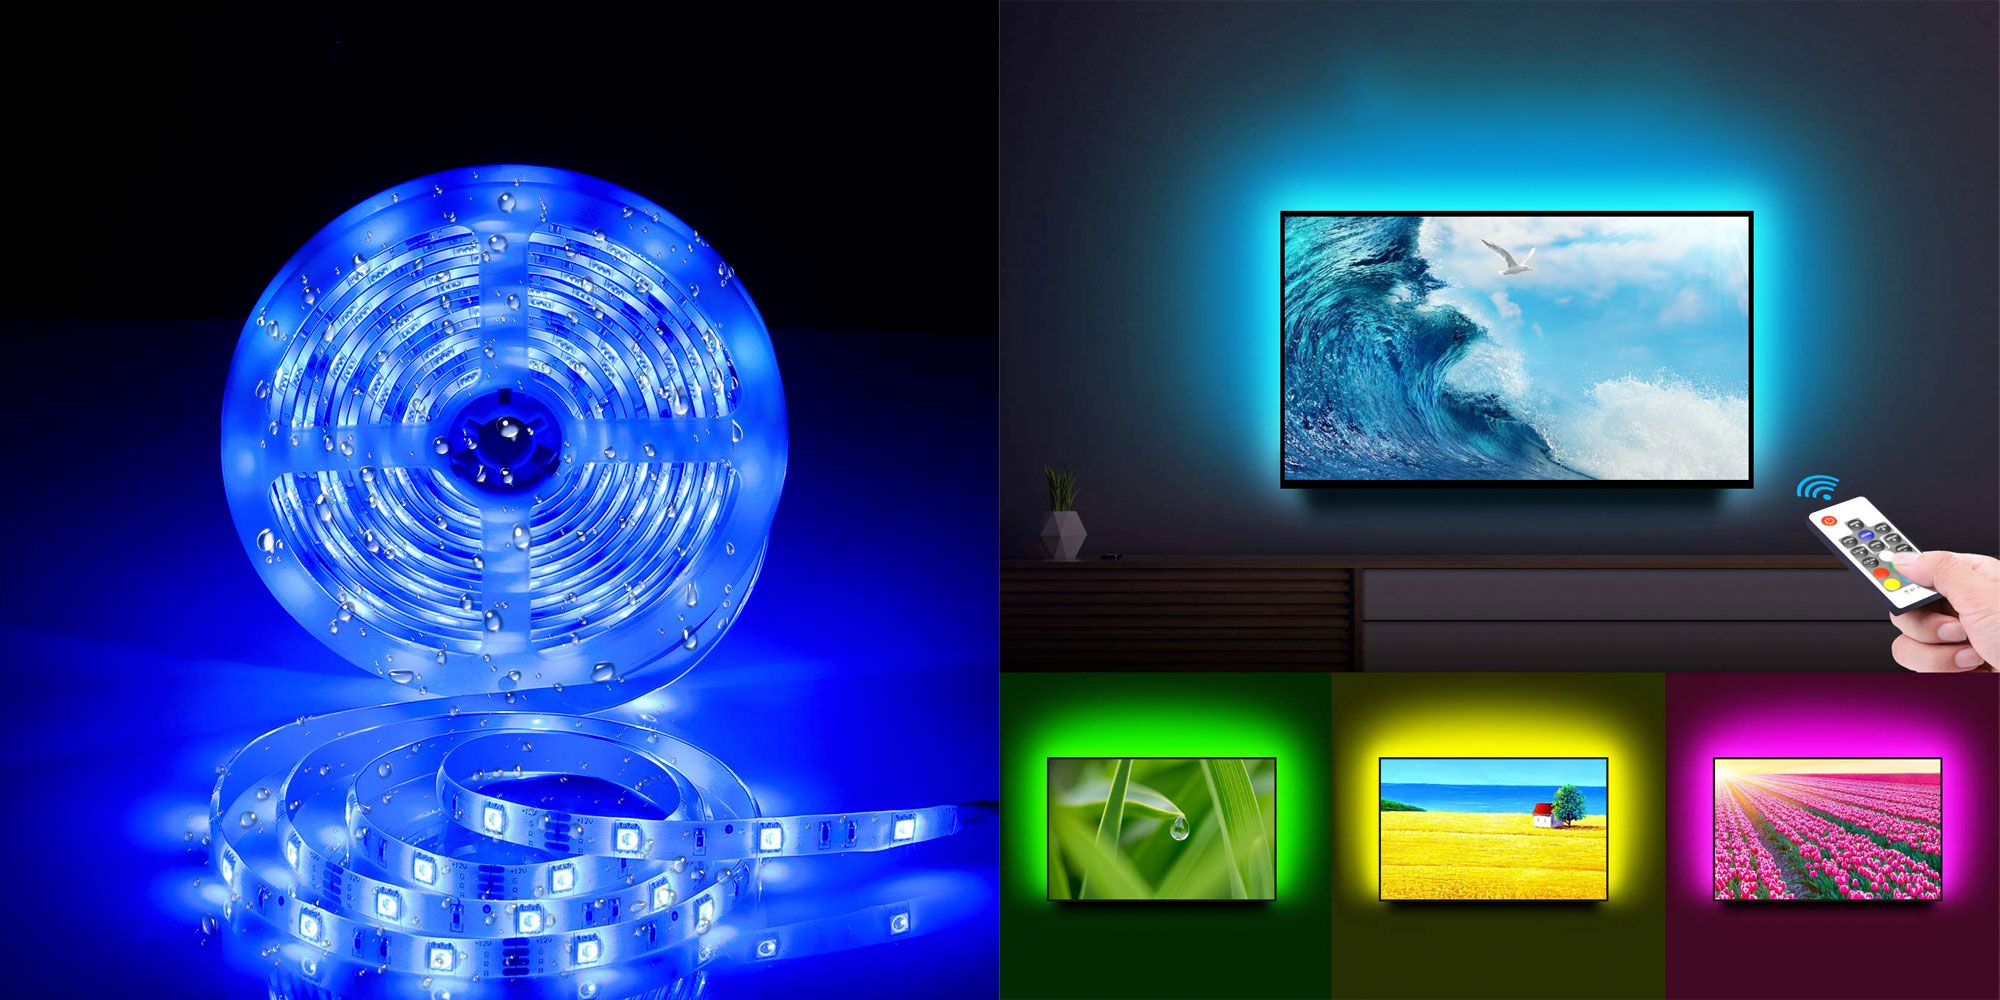 Add bias lighting to your home theater or ambient lighting to the rest of your home RGB strips from $7